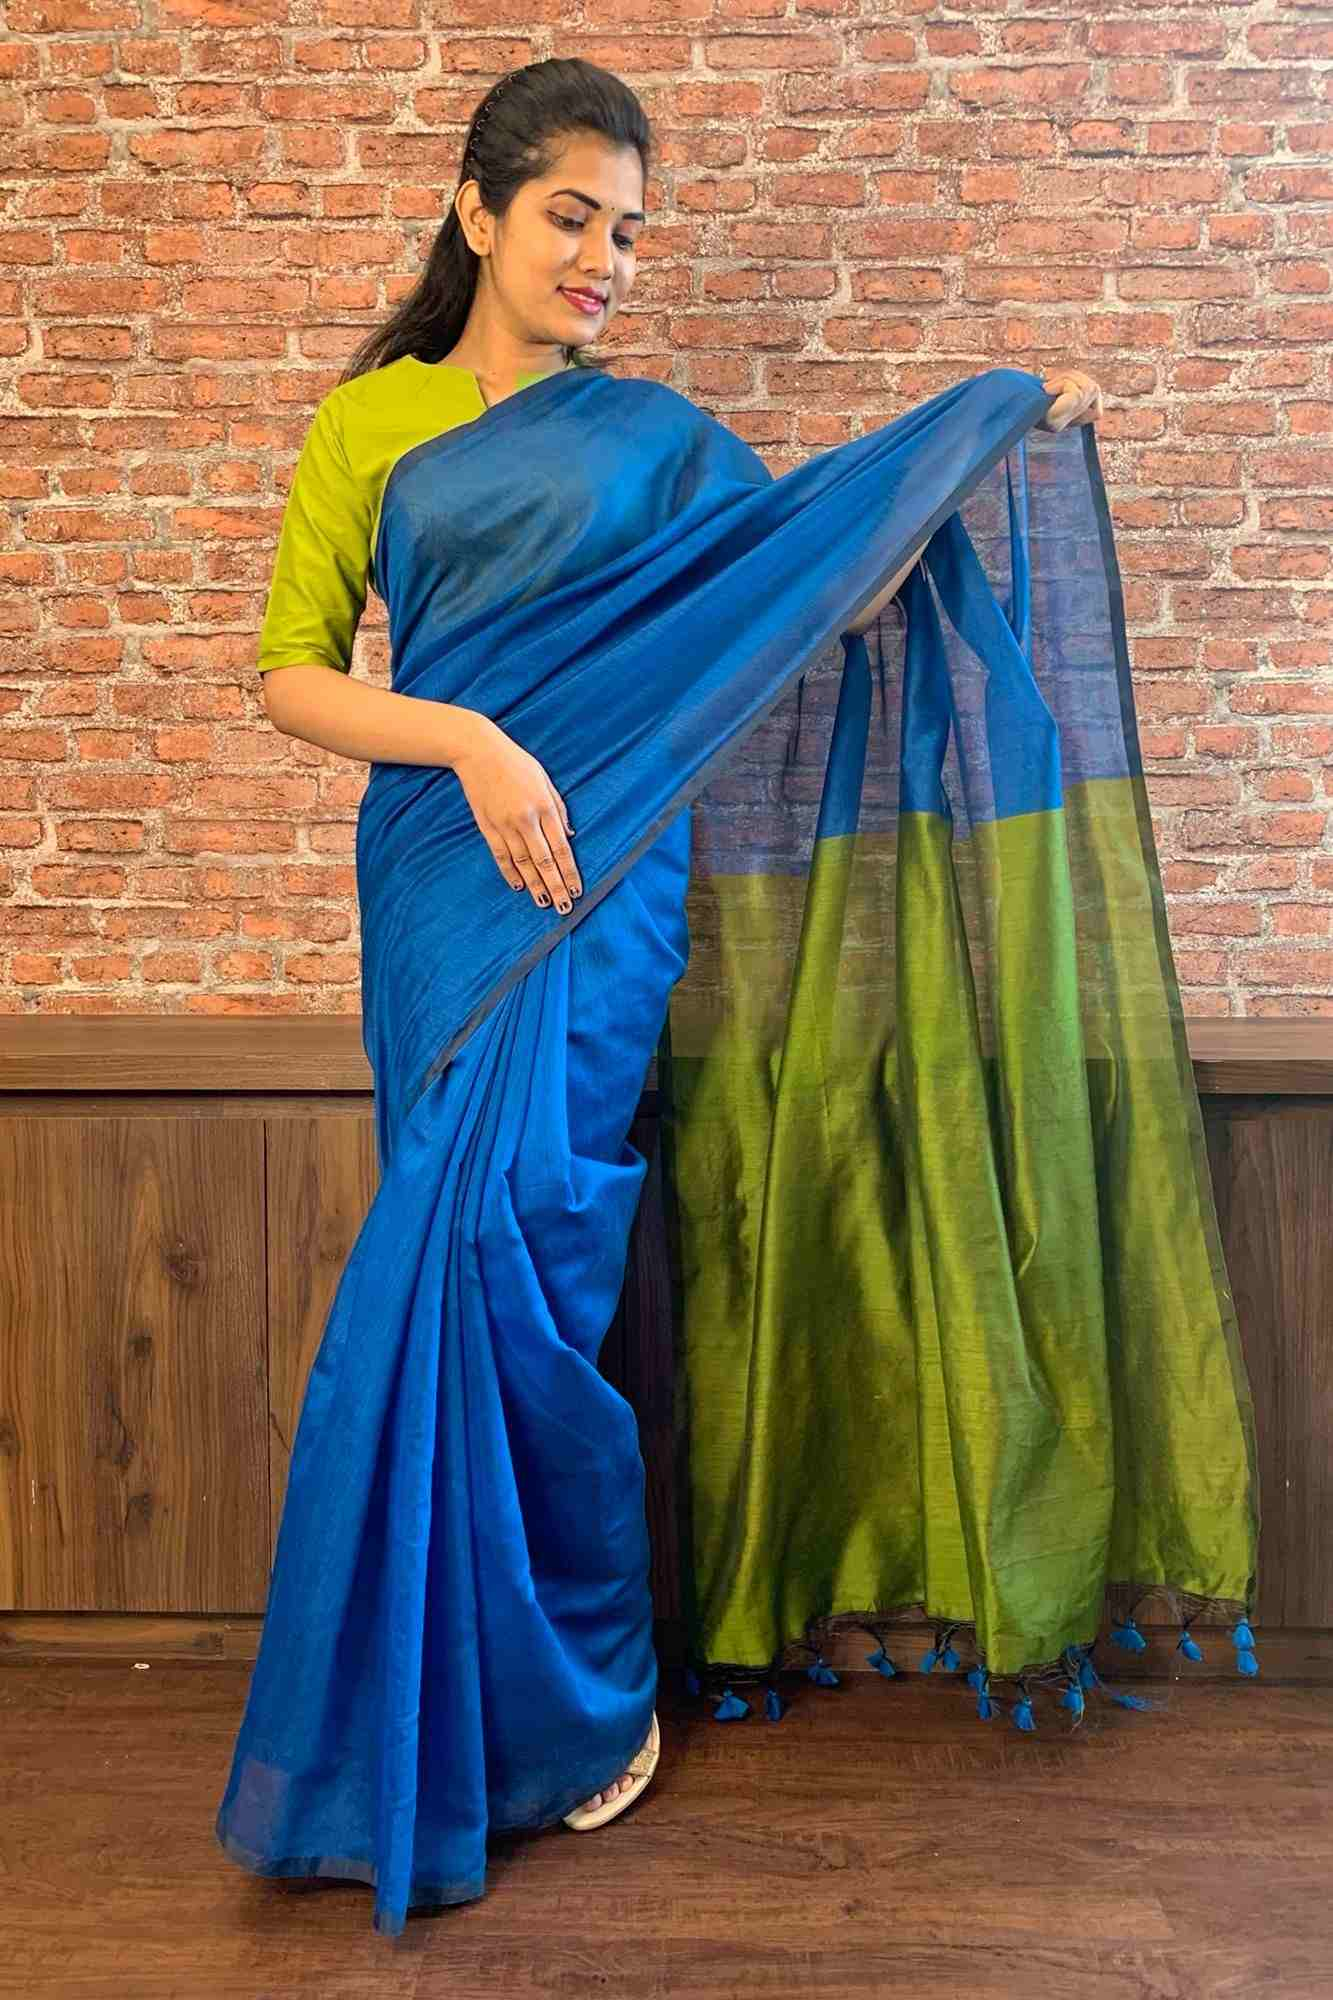 Handloom khadi wrap in 1 minute saree